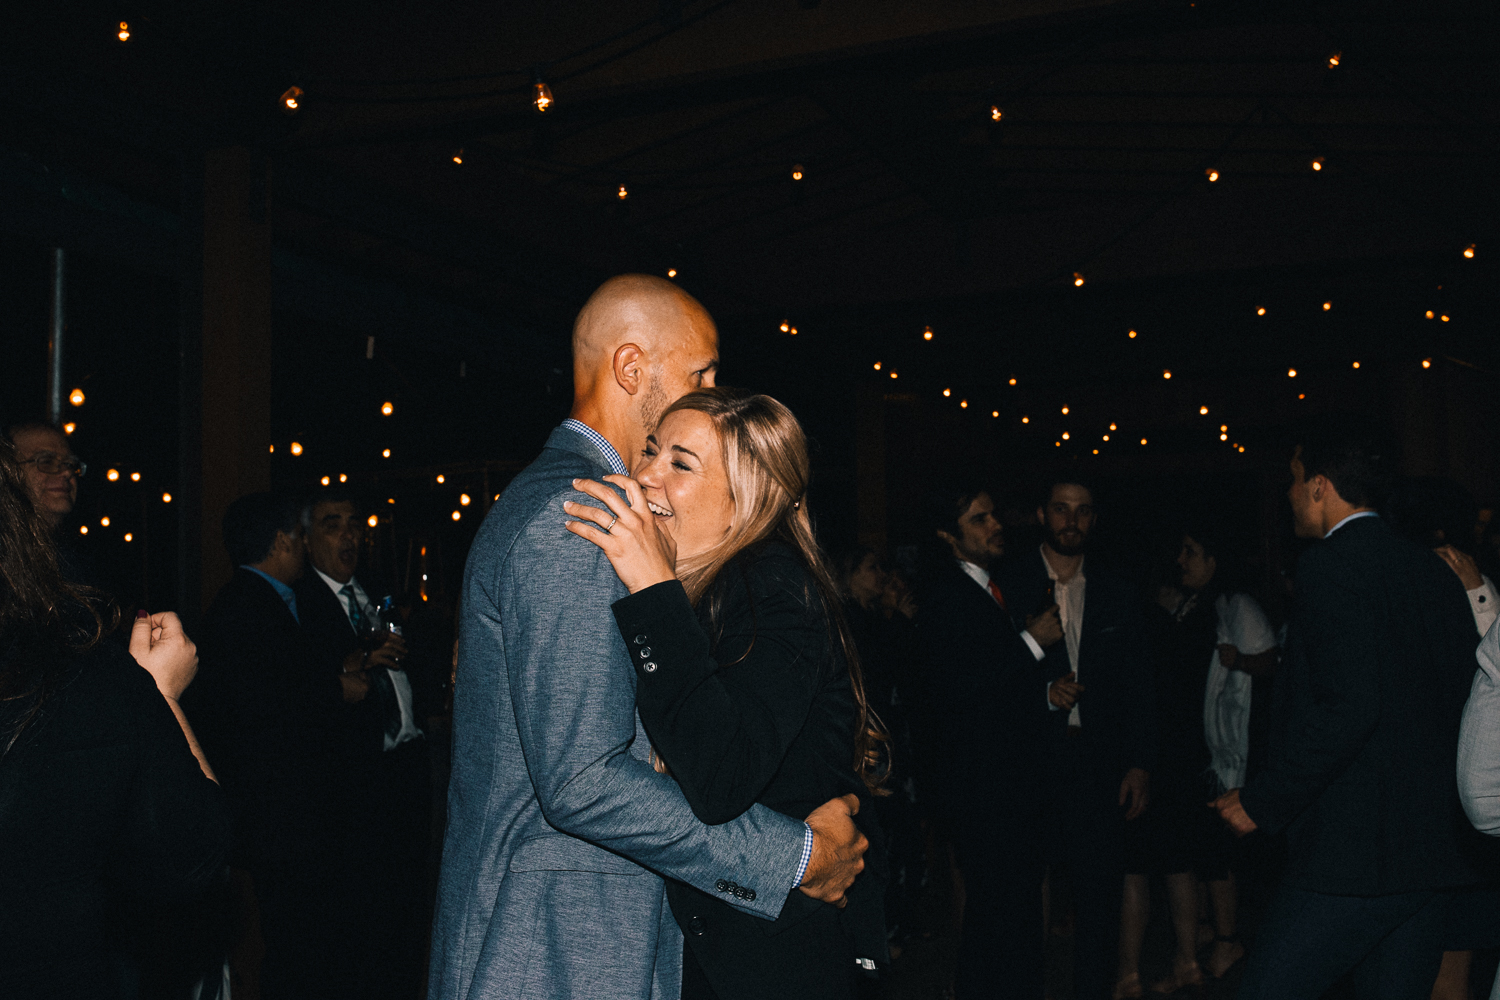 2019_05_ 182019.05.19 Lisa + Eddie South Bay Wedding Blog Photos Edited For Web 0158.jpg